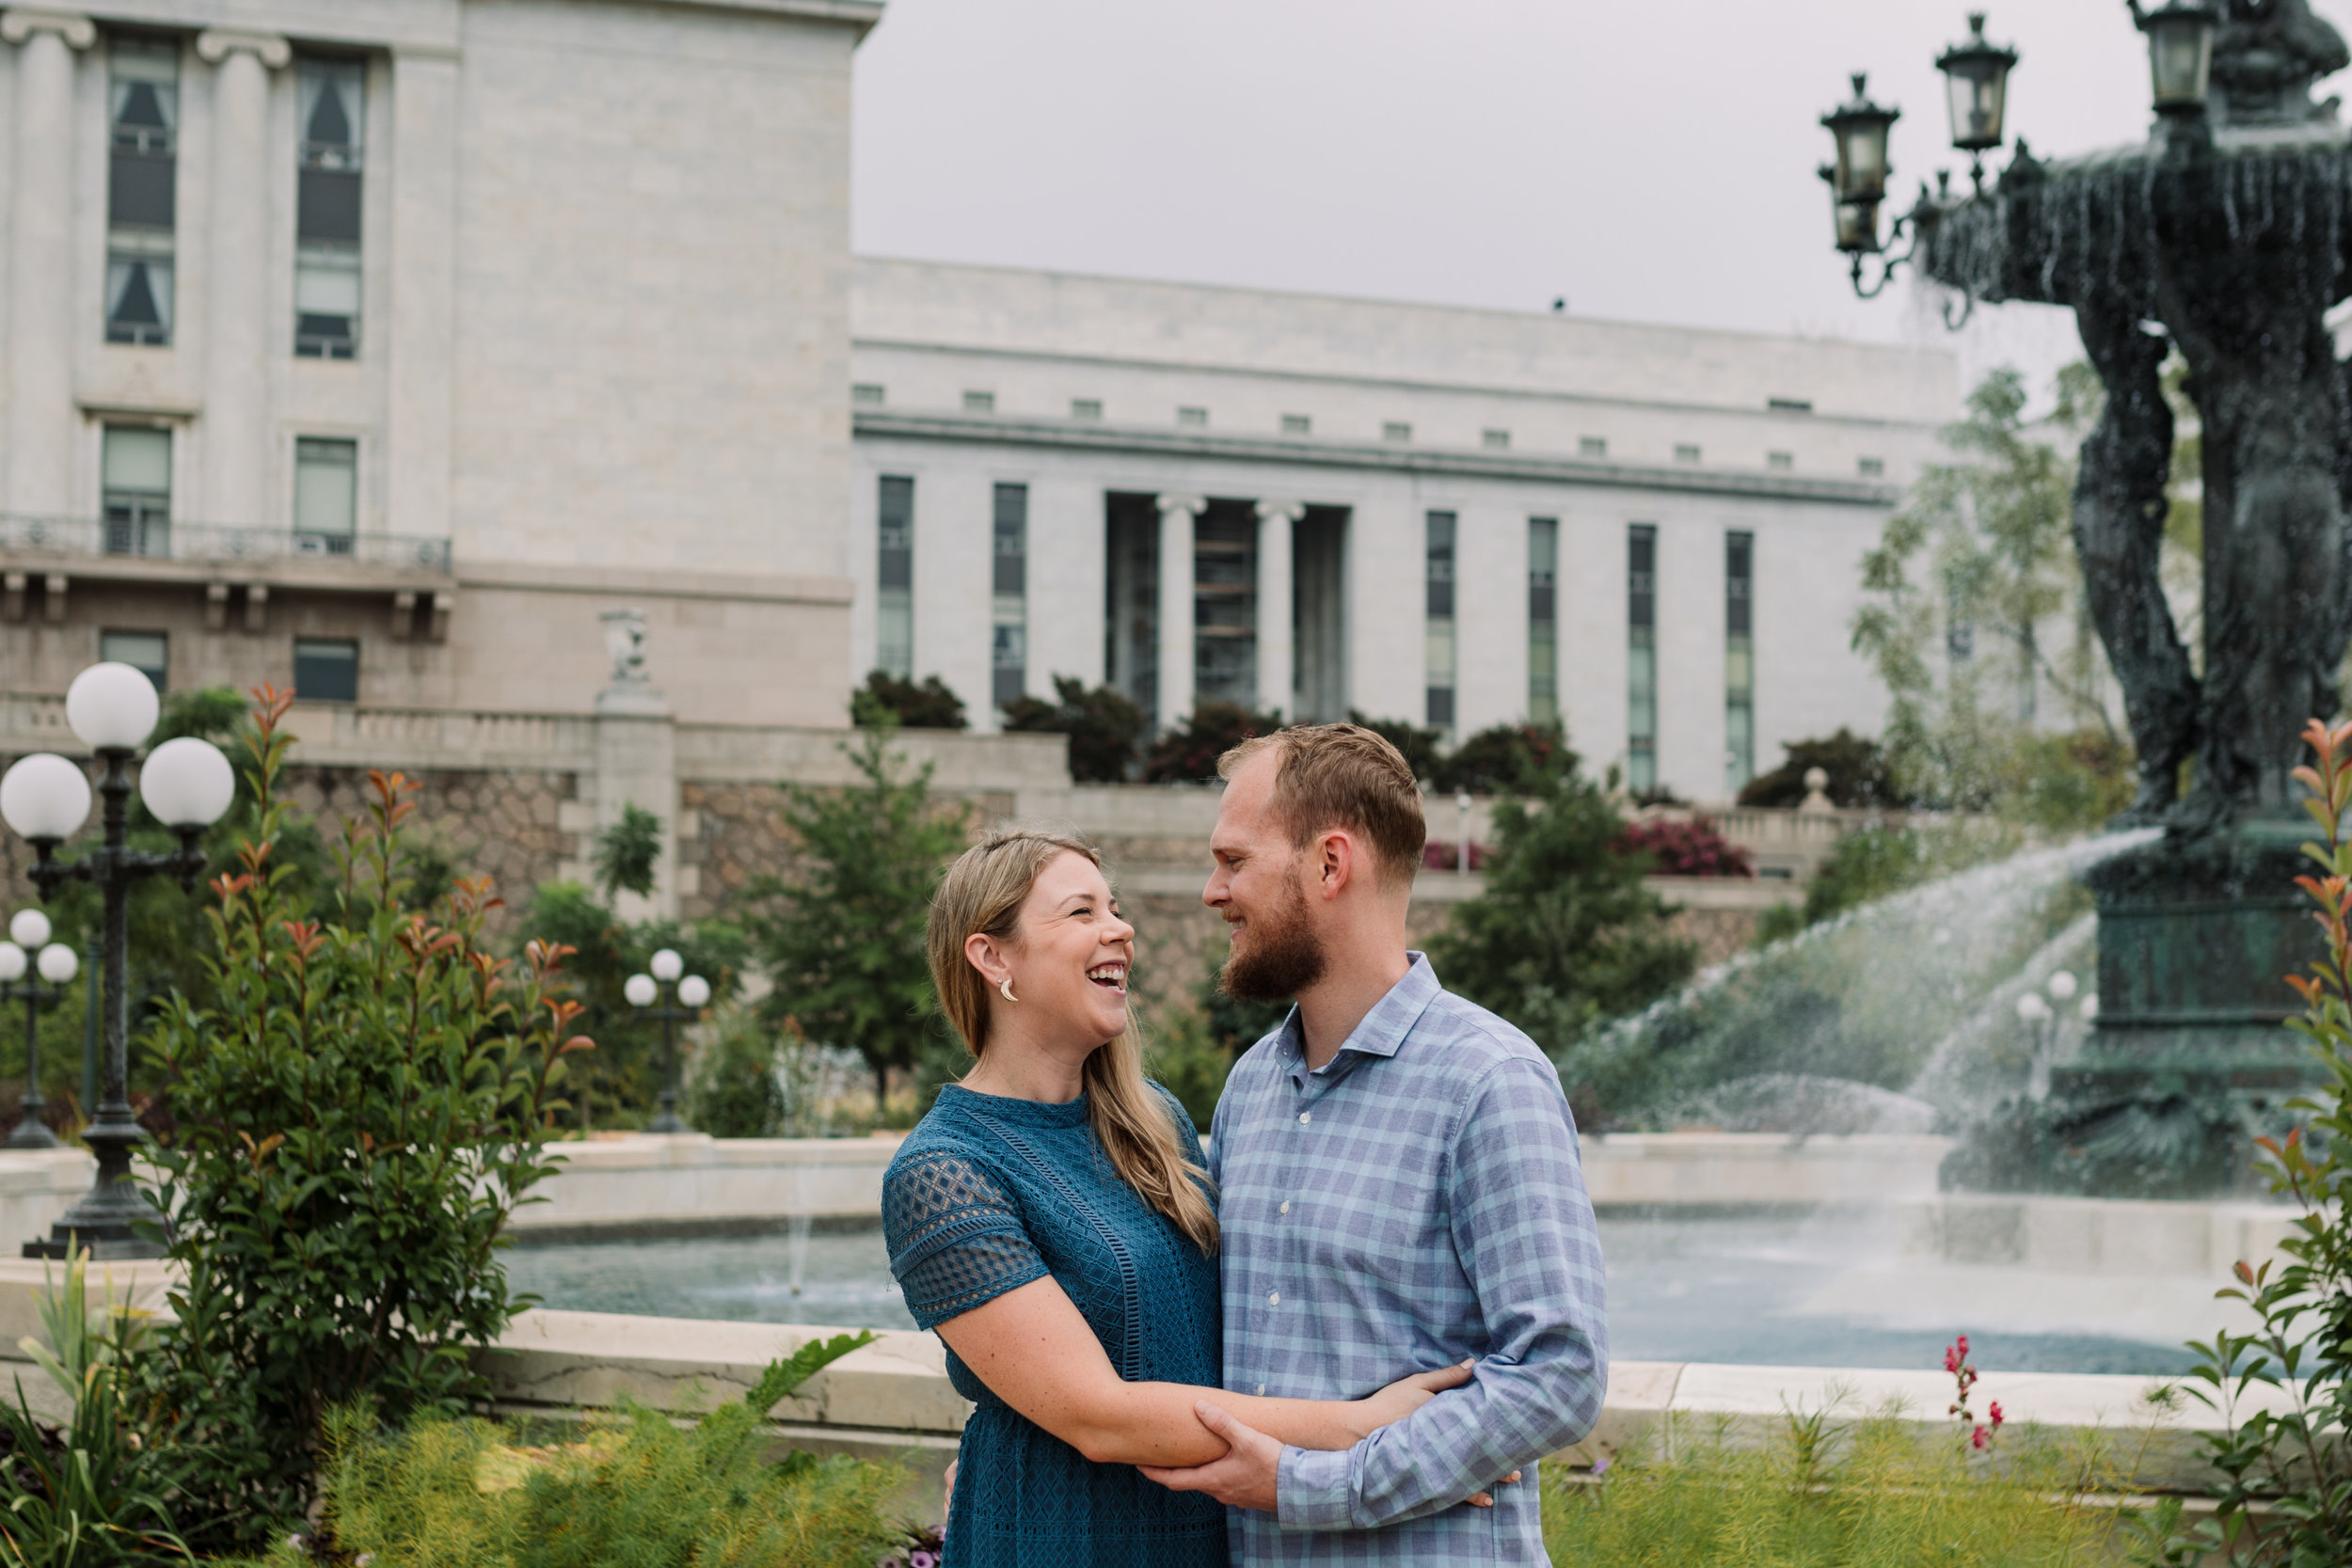 PANGTOGRAPHY_KJ-5.JPG WASHINGTON DC ENGAGEMENT